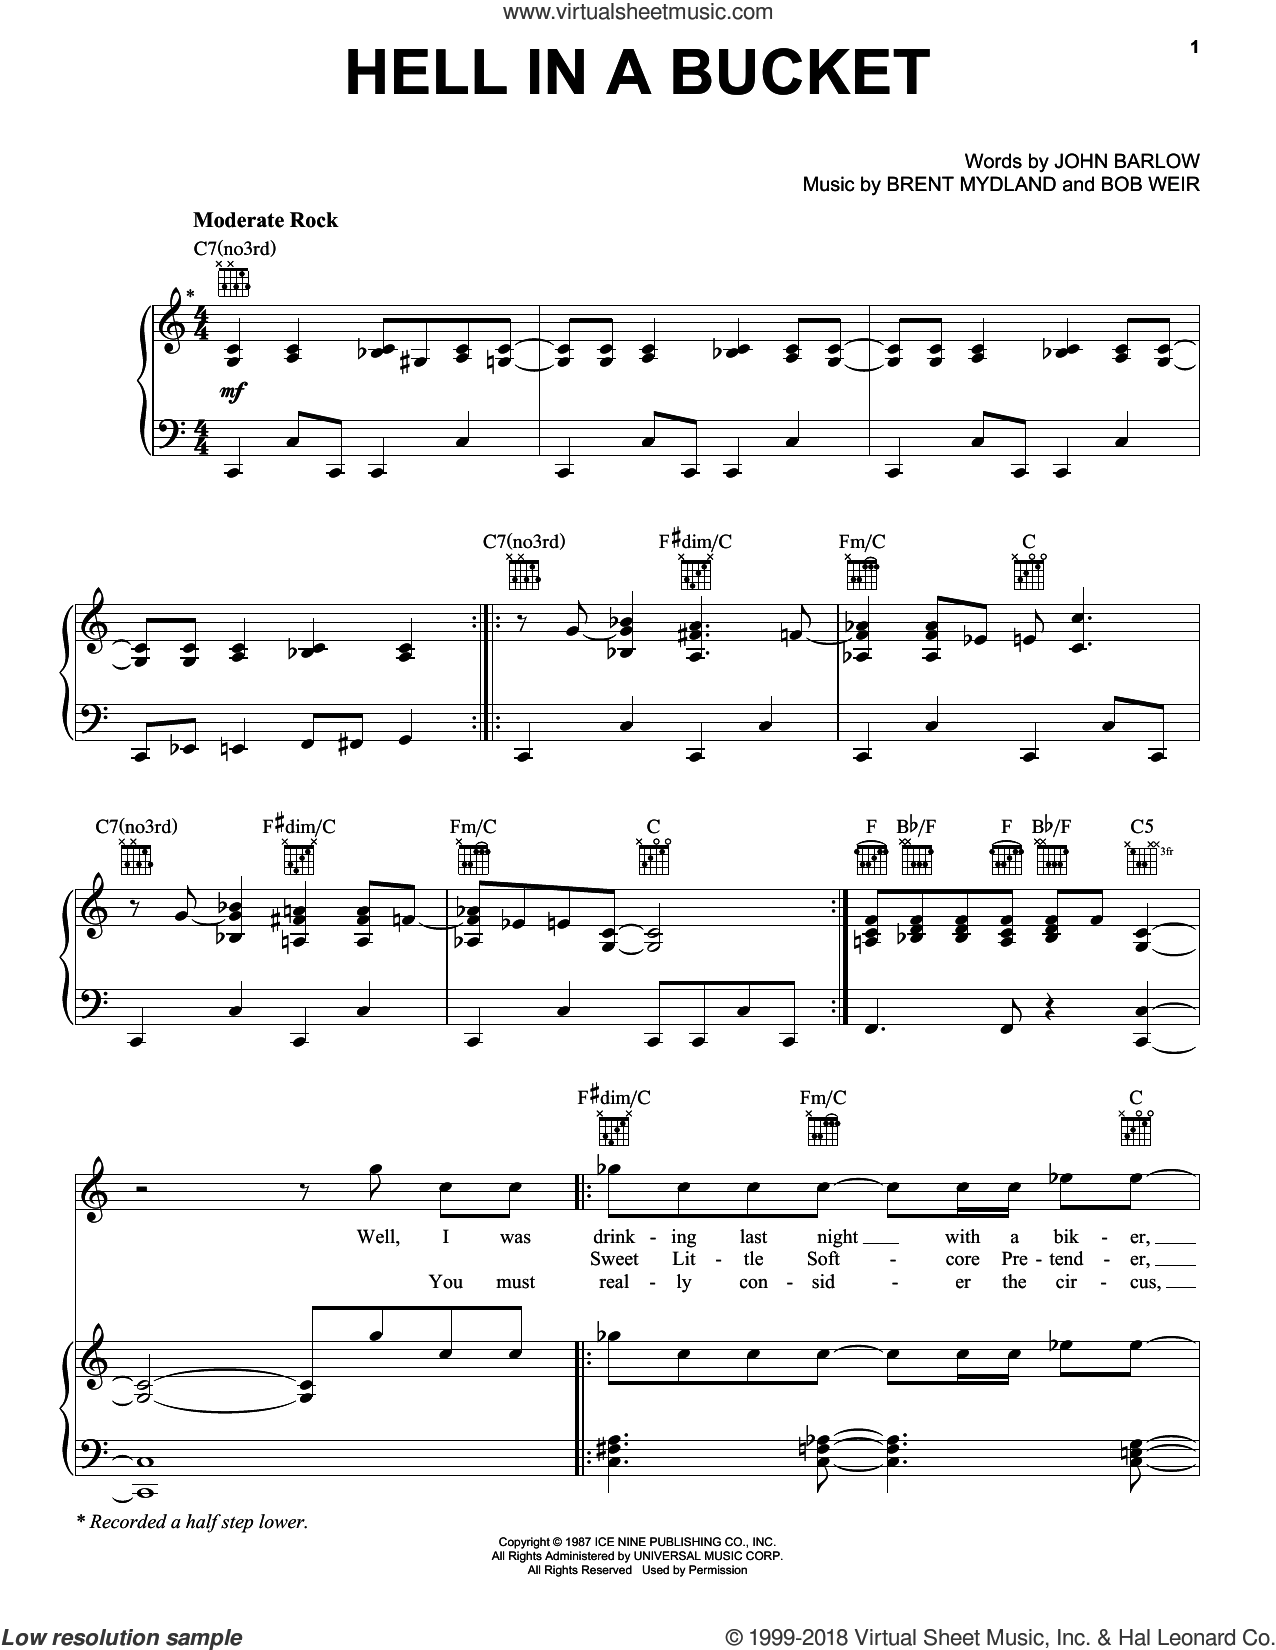 Hell In A Bucket sheet music for voice, piano or guitar by Grateful Dead, Bob Weir, Brent Mydland and John Barlow, intermediate skill level